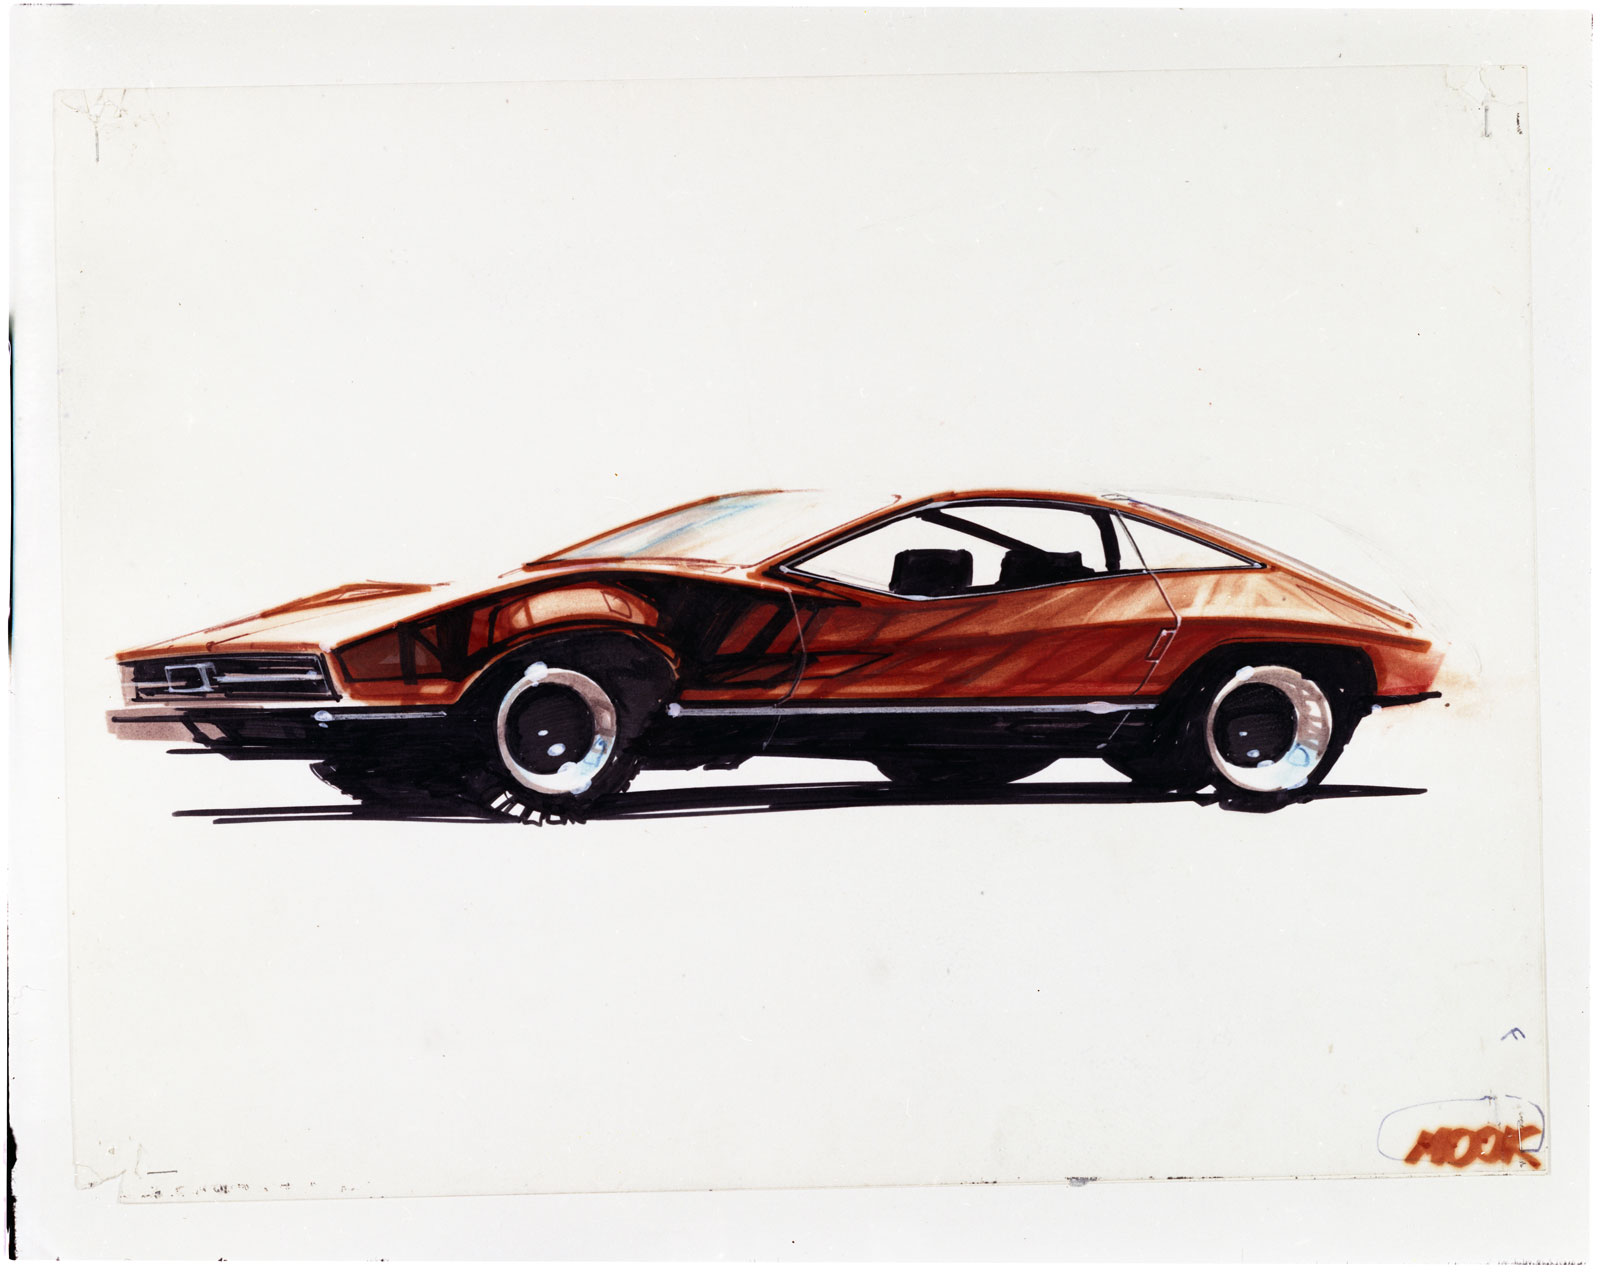 1974 Mustang II Design Sketch